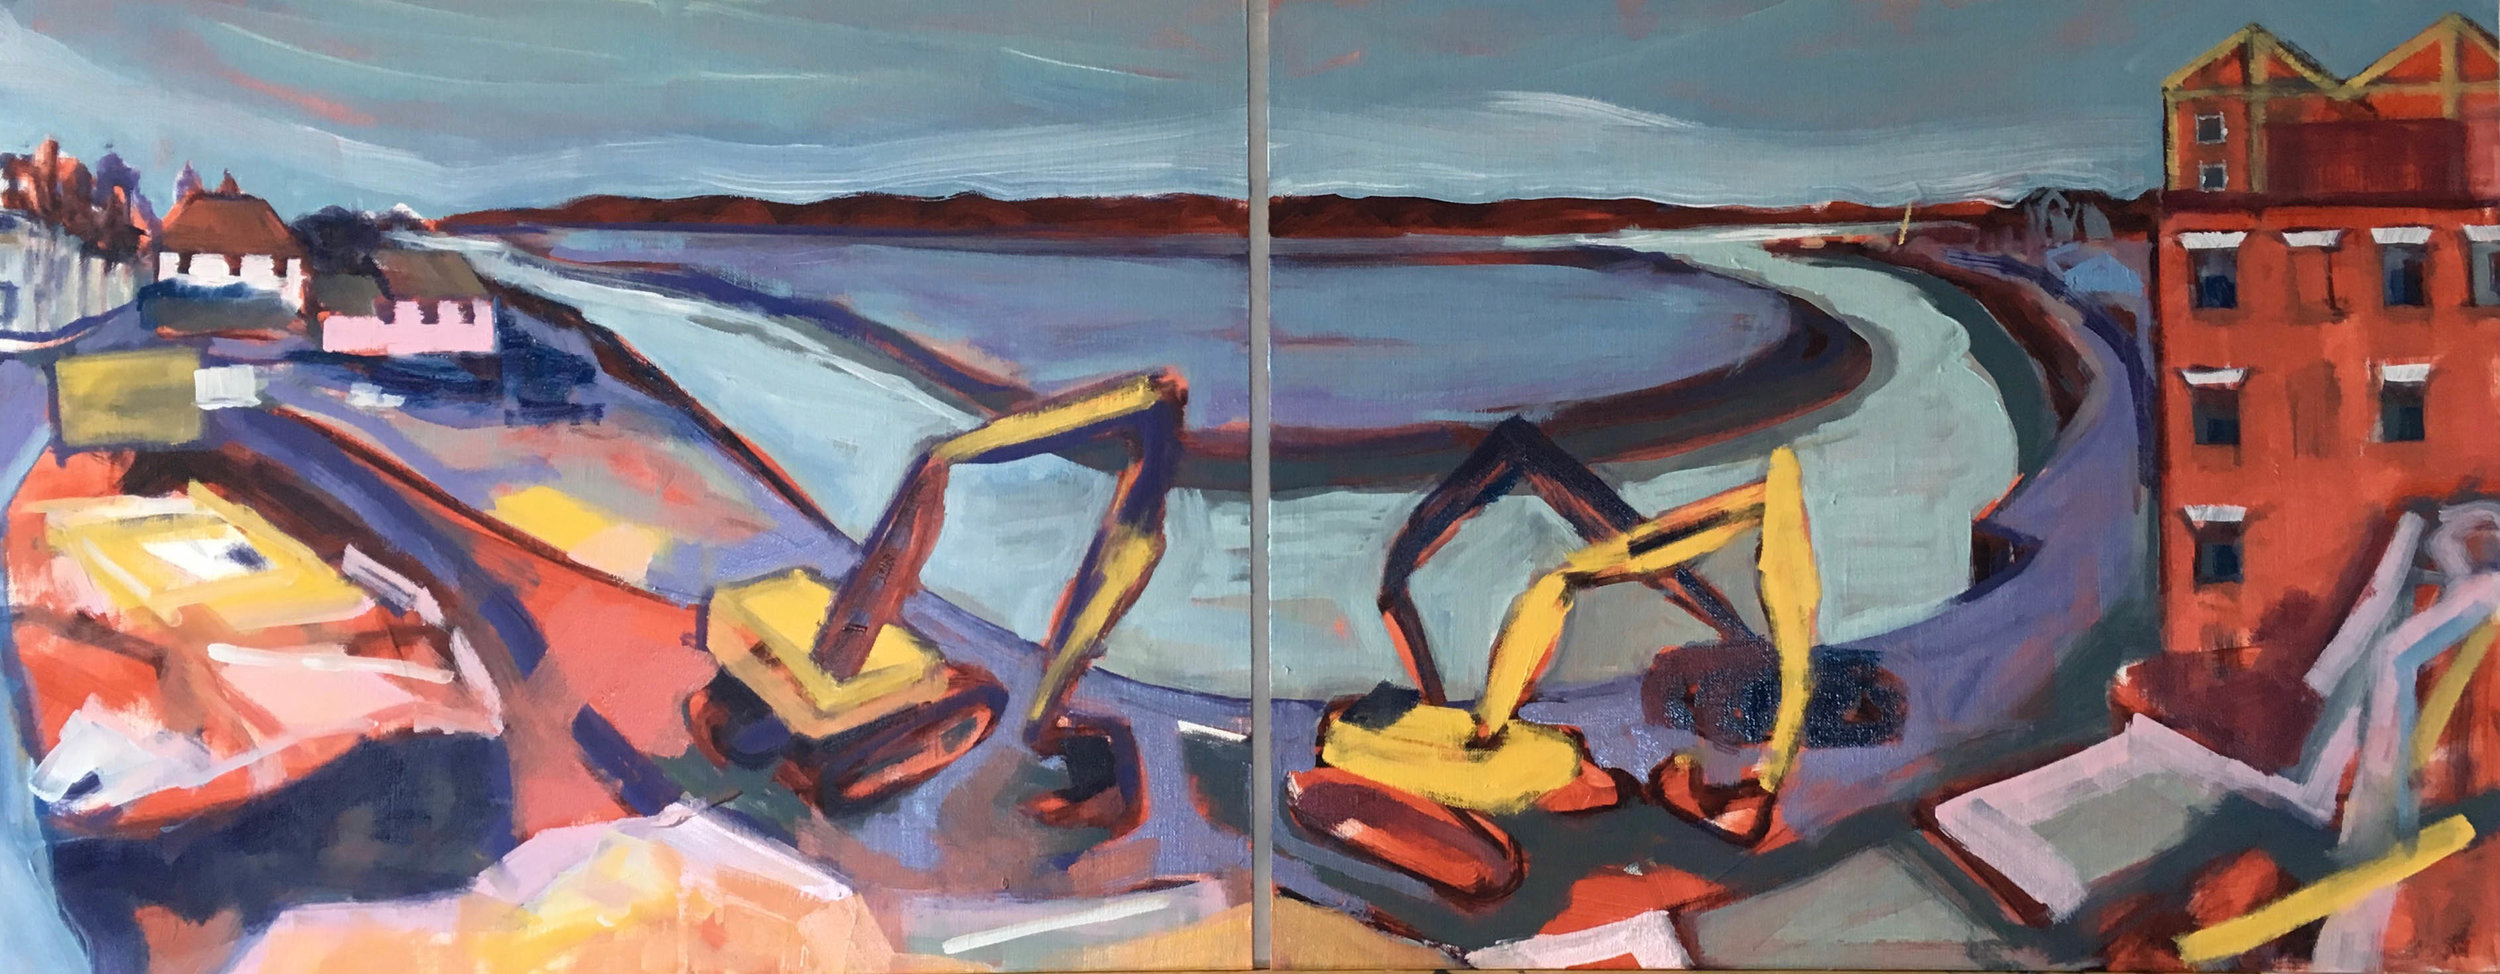 Mistley Quay Demolition Low Tide , Oil on board, 40 x 100 cm